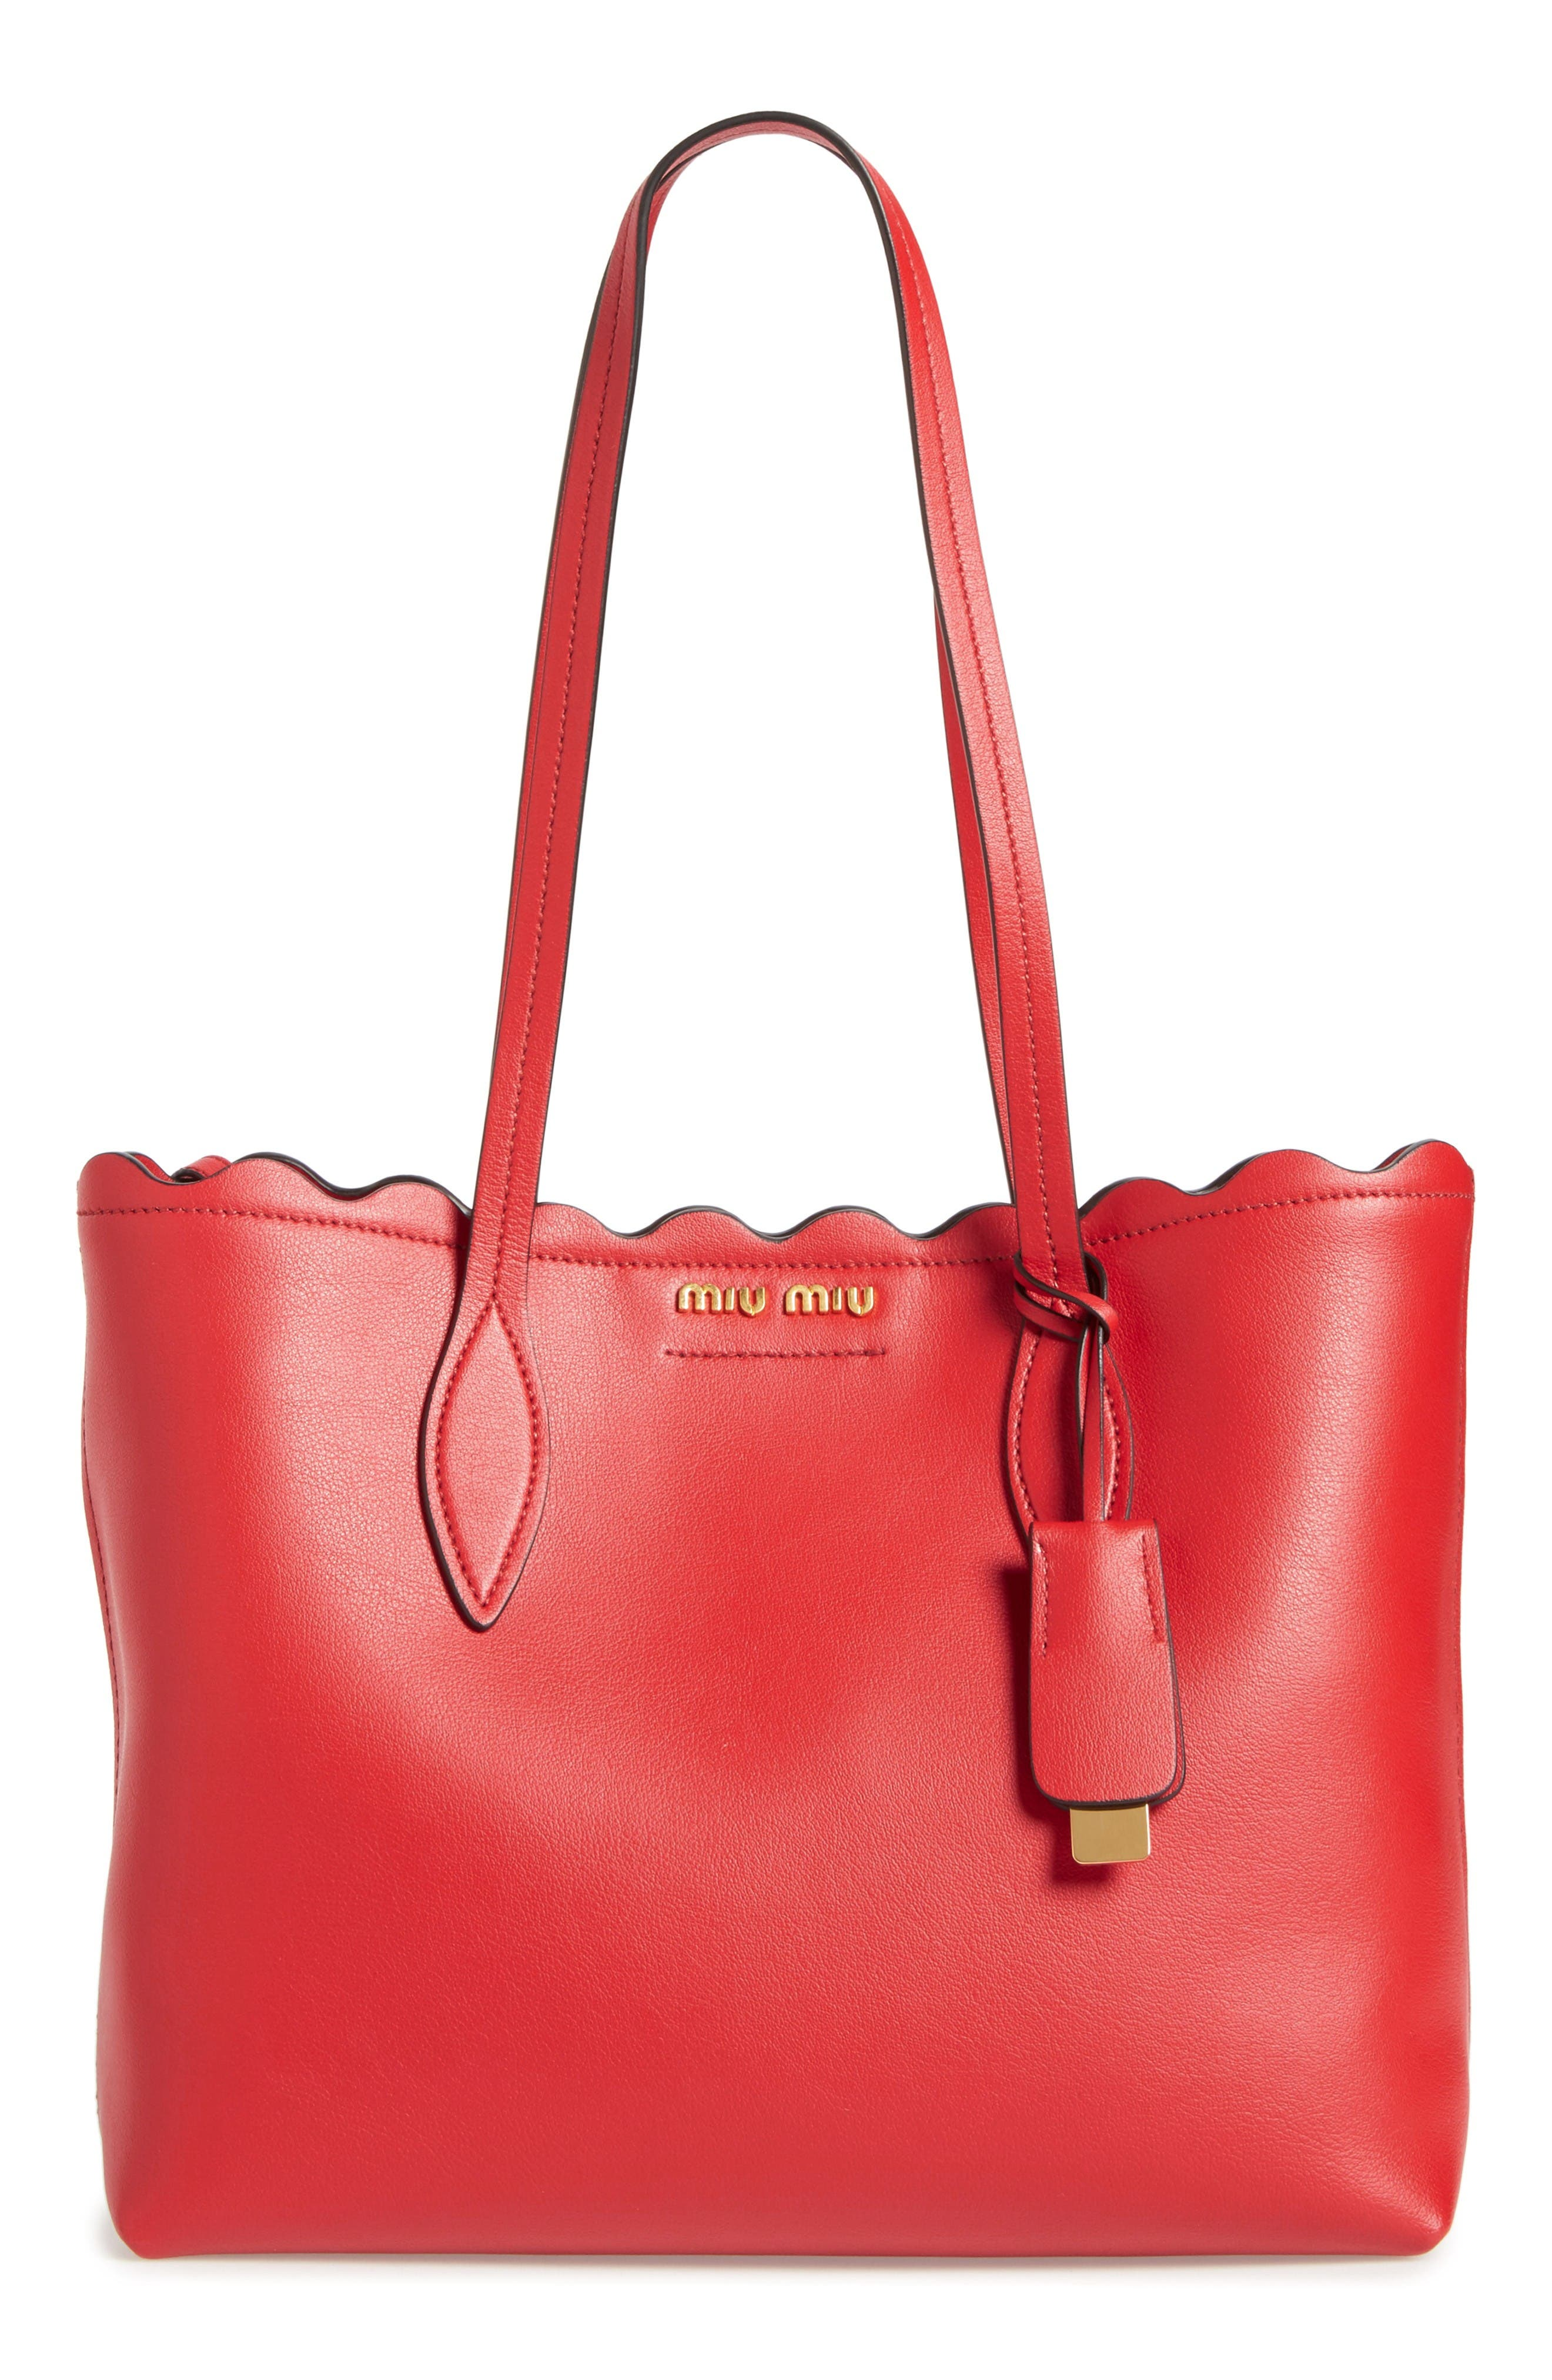 MIU MIU Small Wave Calfskin Leather Shopper